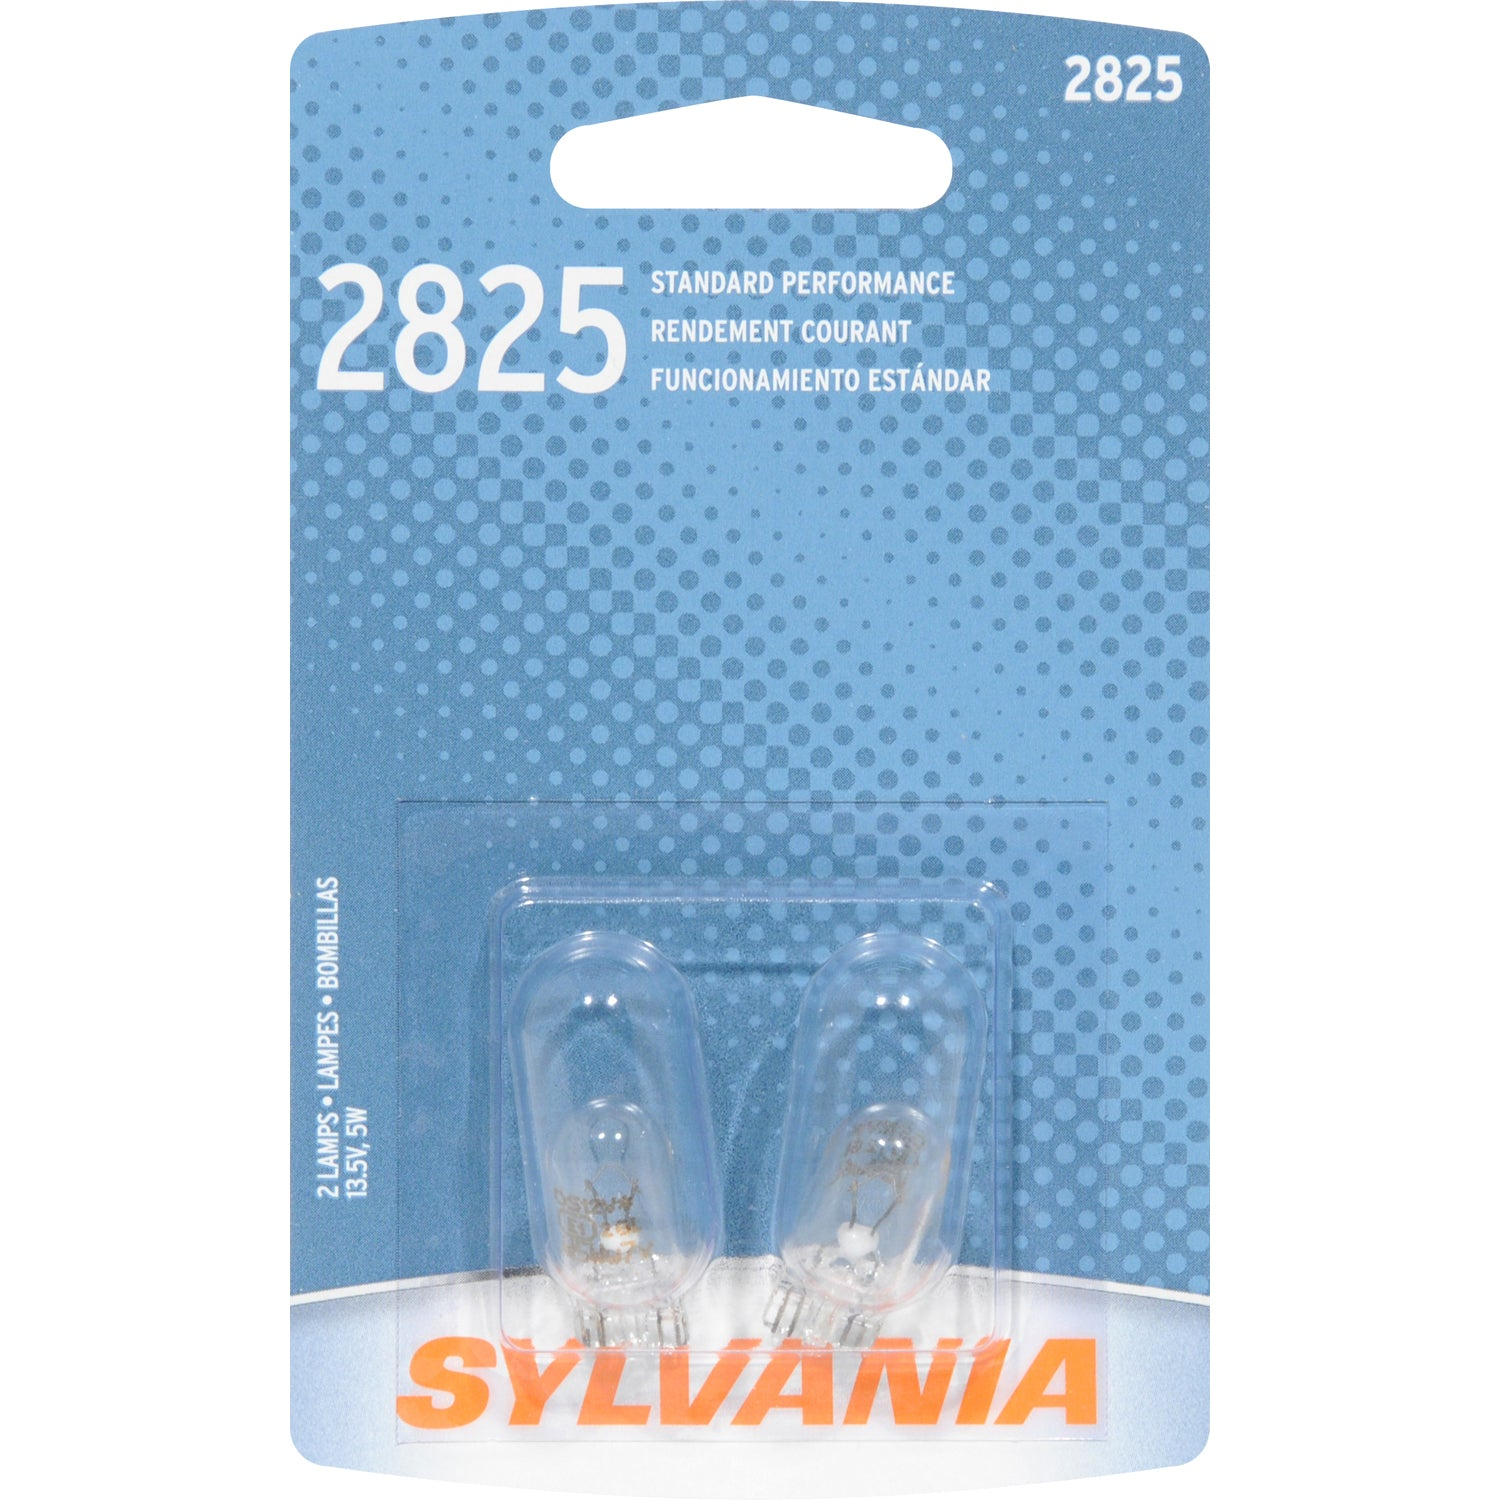 2-PK - SYLVANIA 2825 Basic Automotive Light Bulb